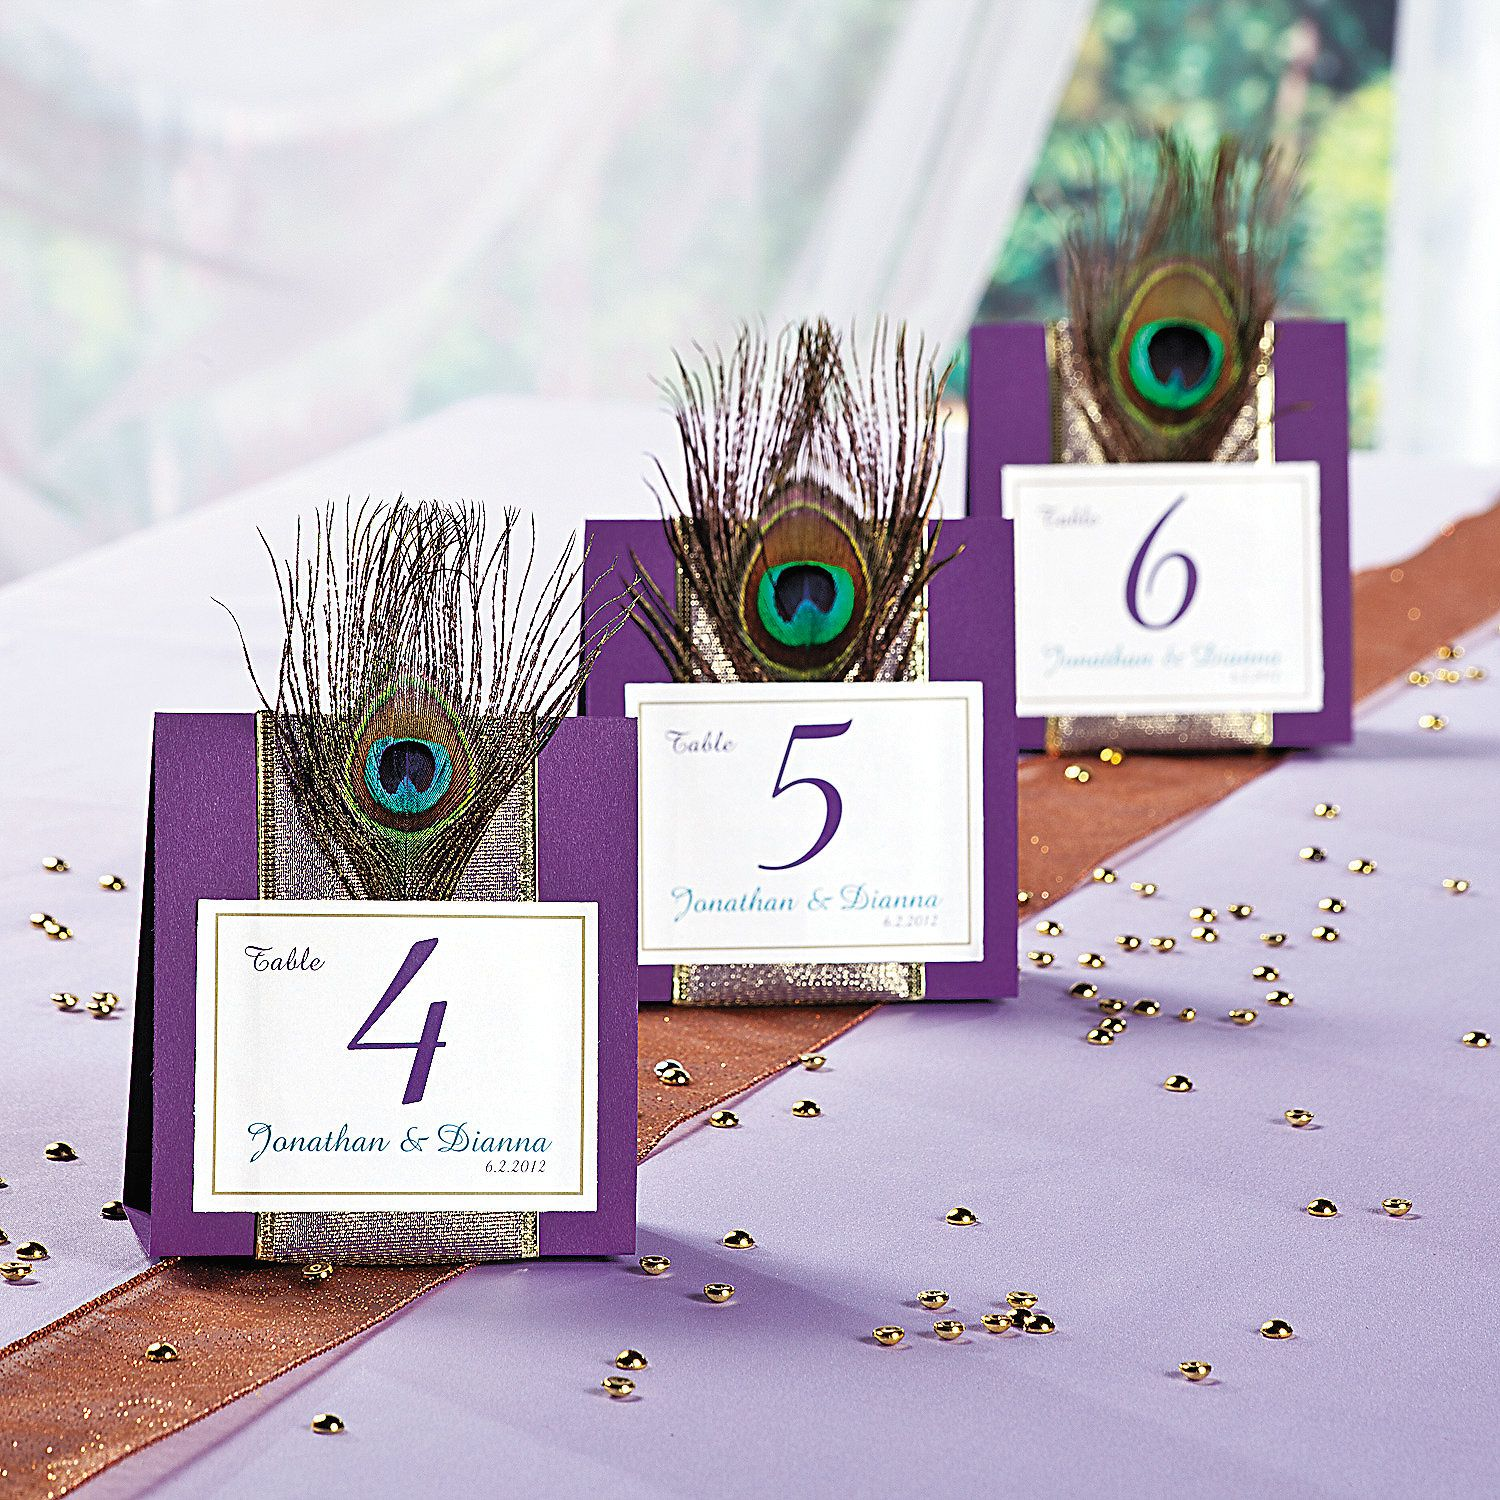 Peacock Wedding Table Numbers